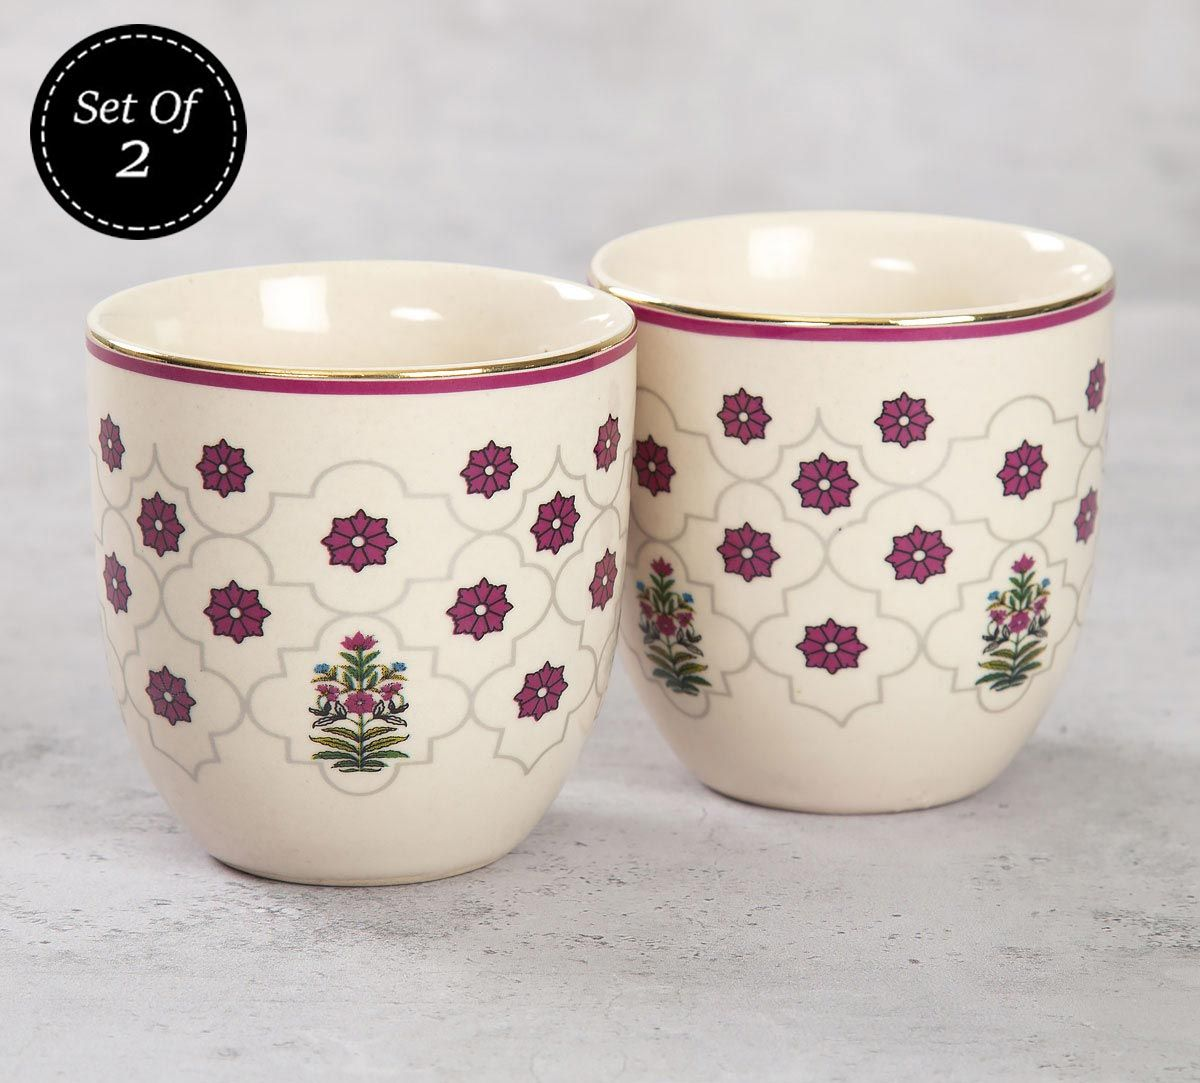 India Circus Floral Lattice Chai Kulhad (Set of 2)